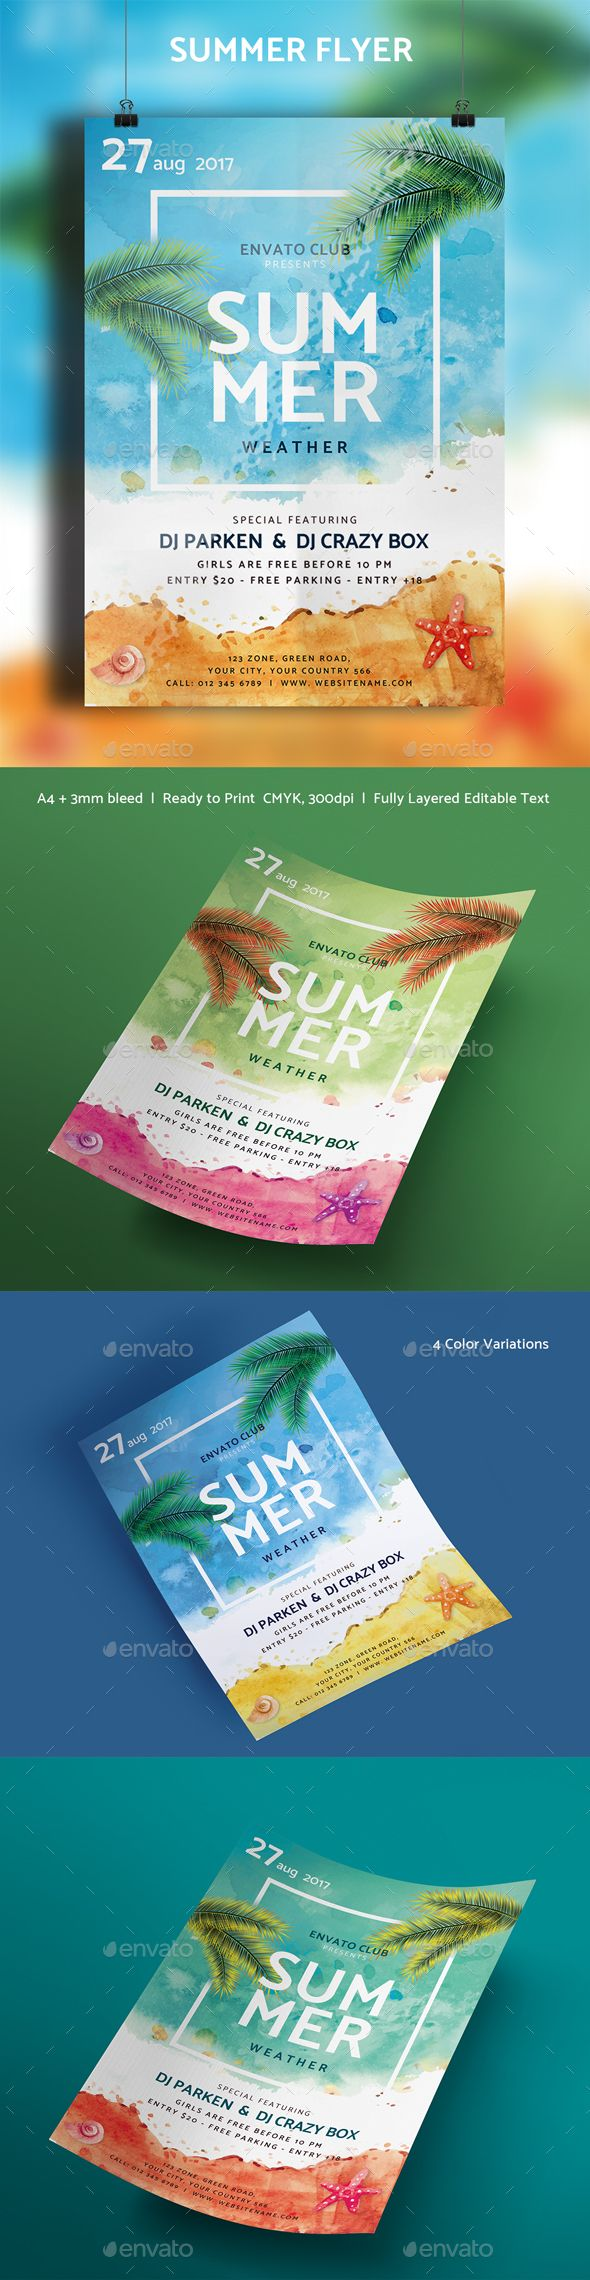 Summer Flyer  Photoshop Psd Template Tropical  Download